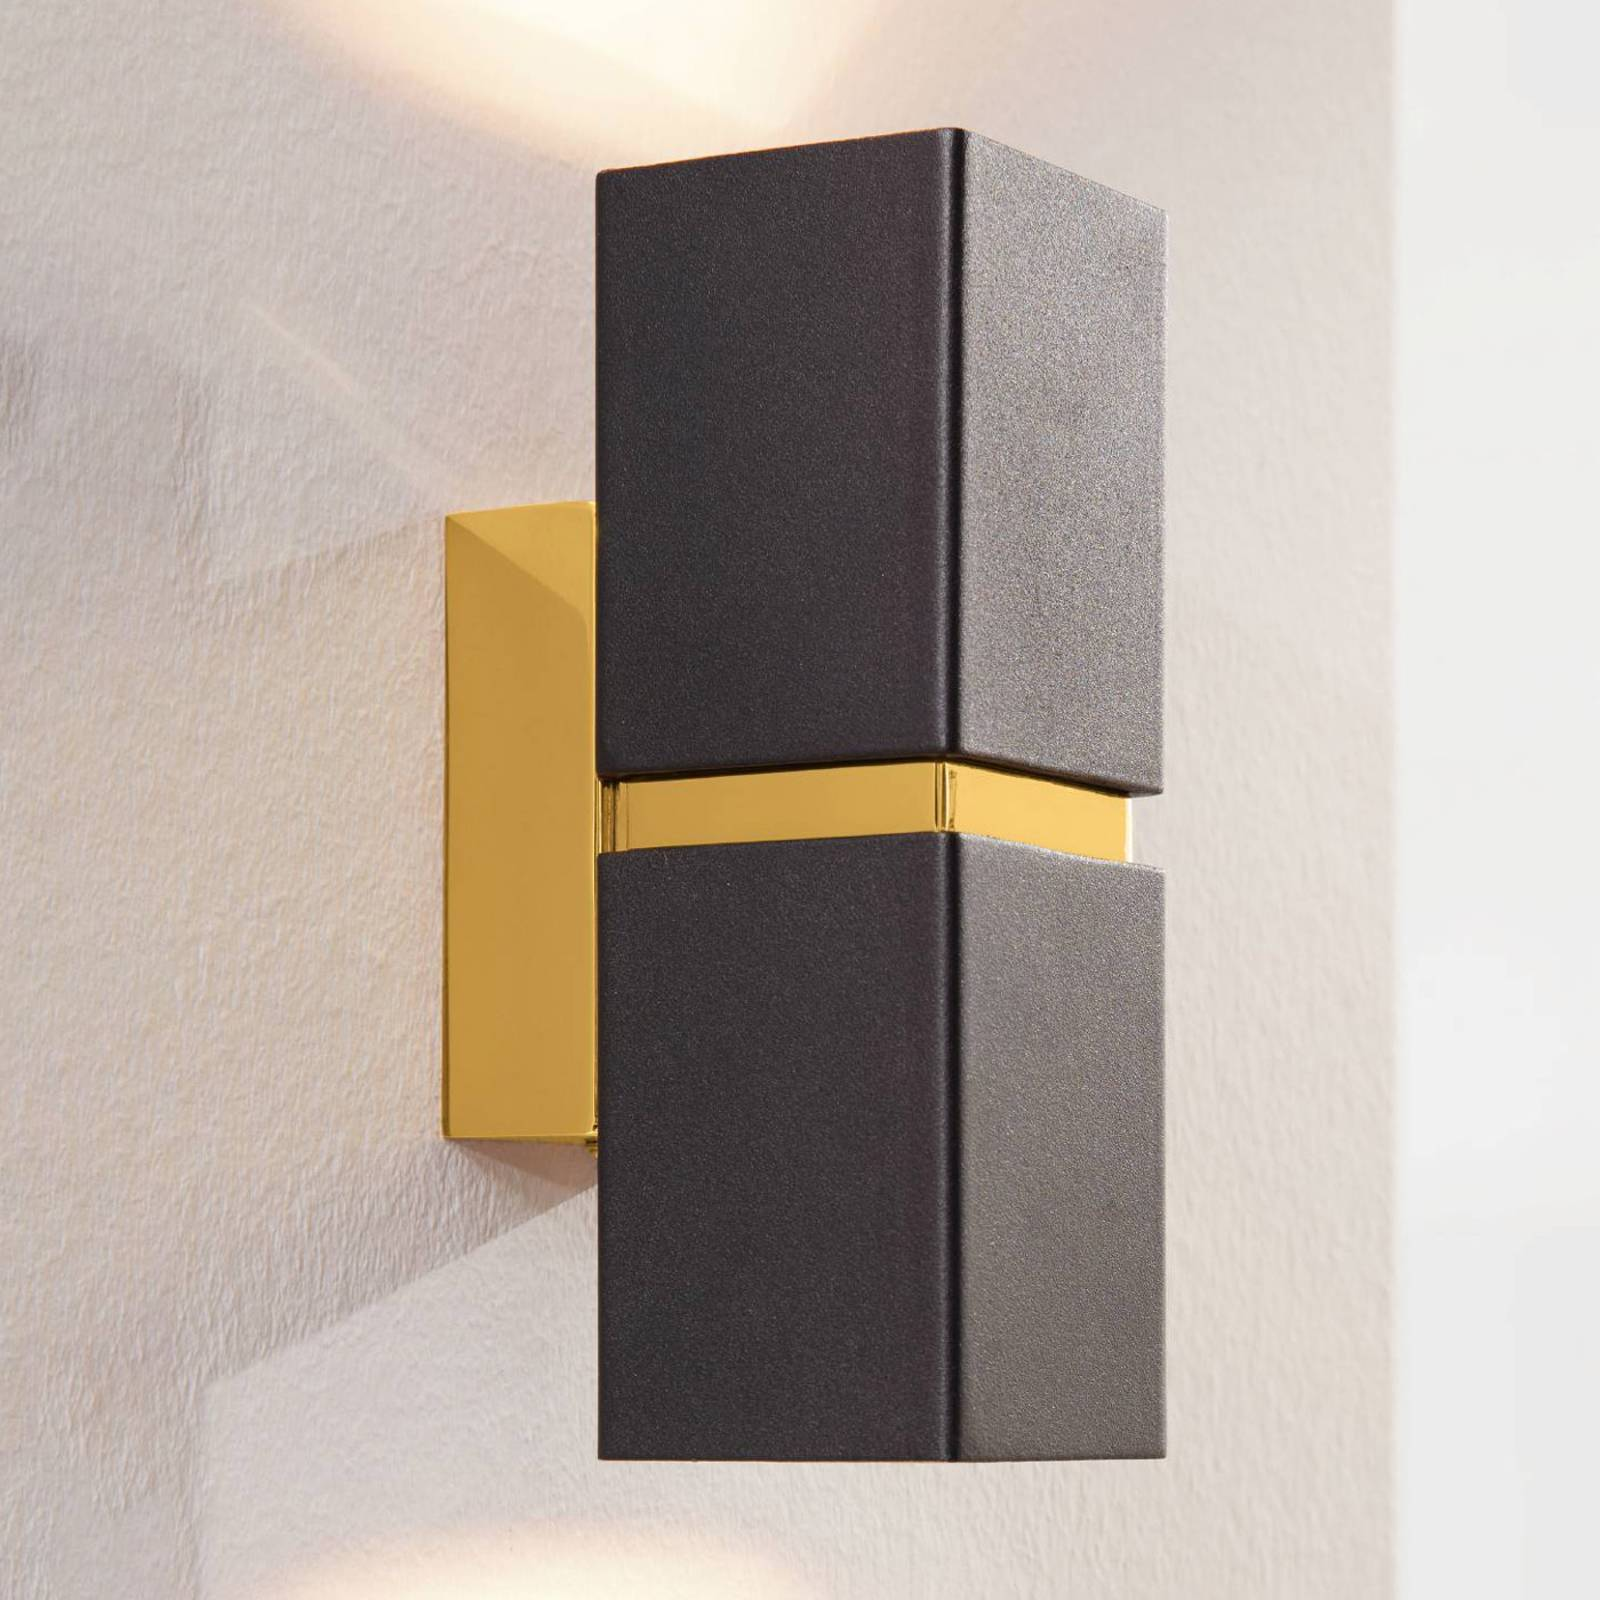 2-bulb LED wall light Passa, black-gold from EGLO